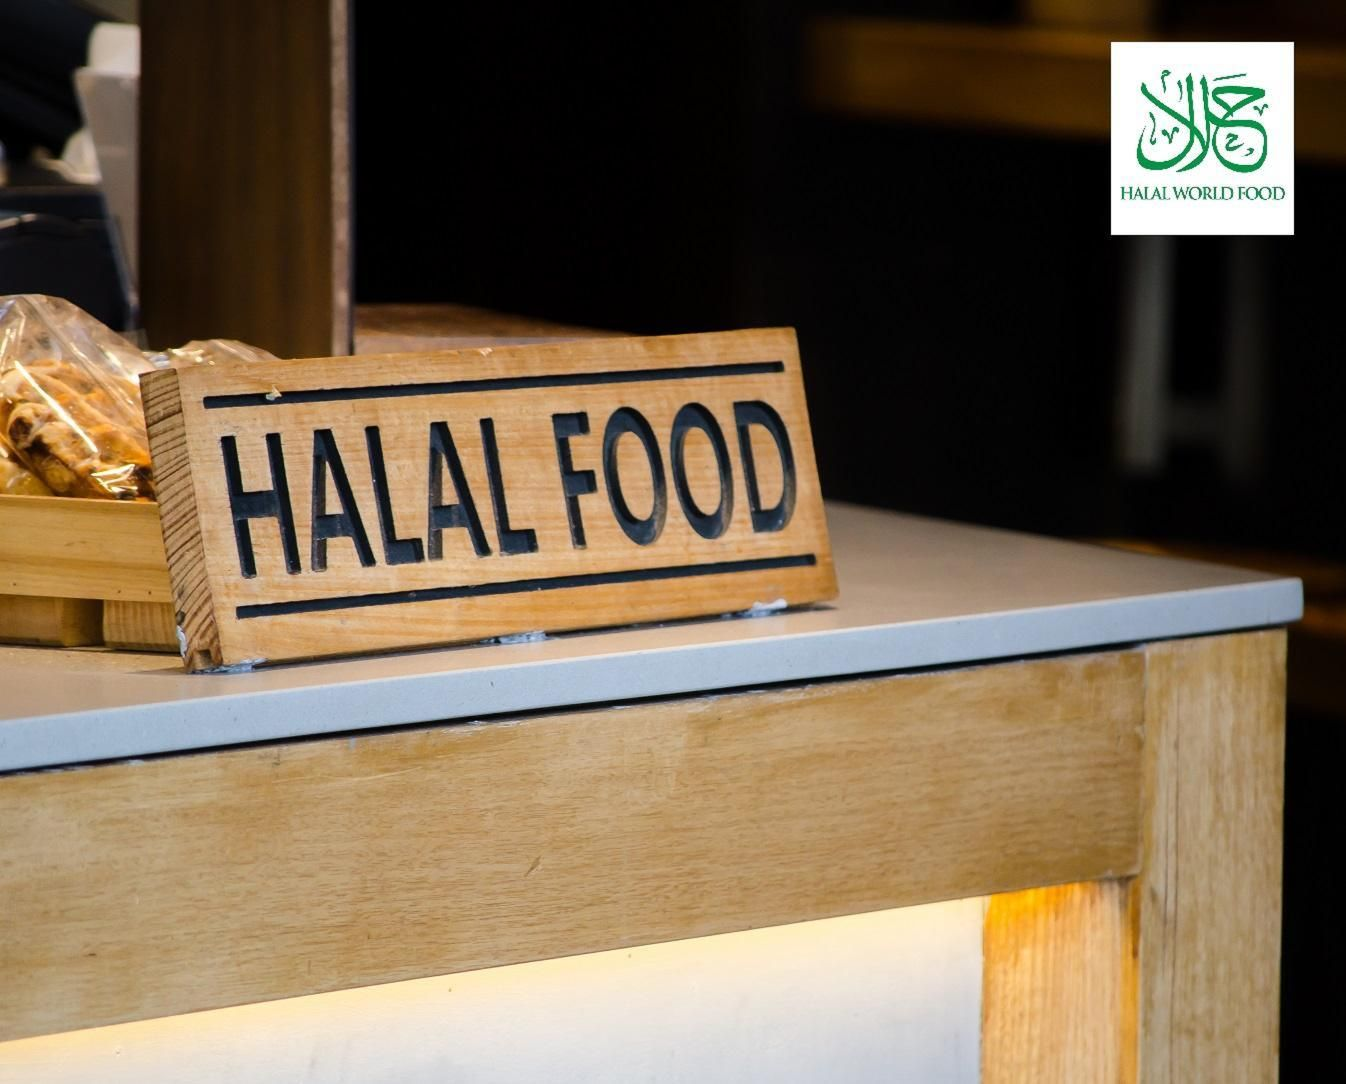 Visit Halal World Food to explore new growth opportunities